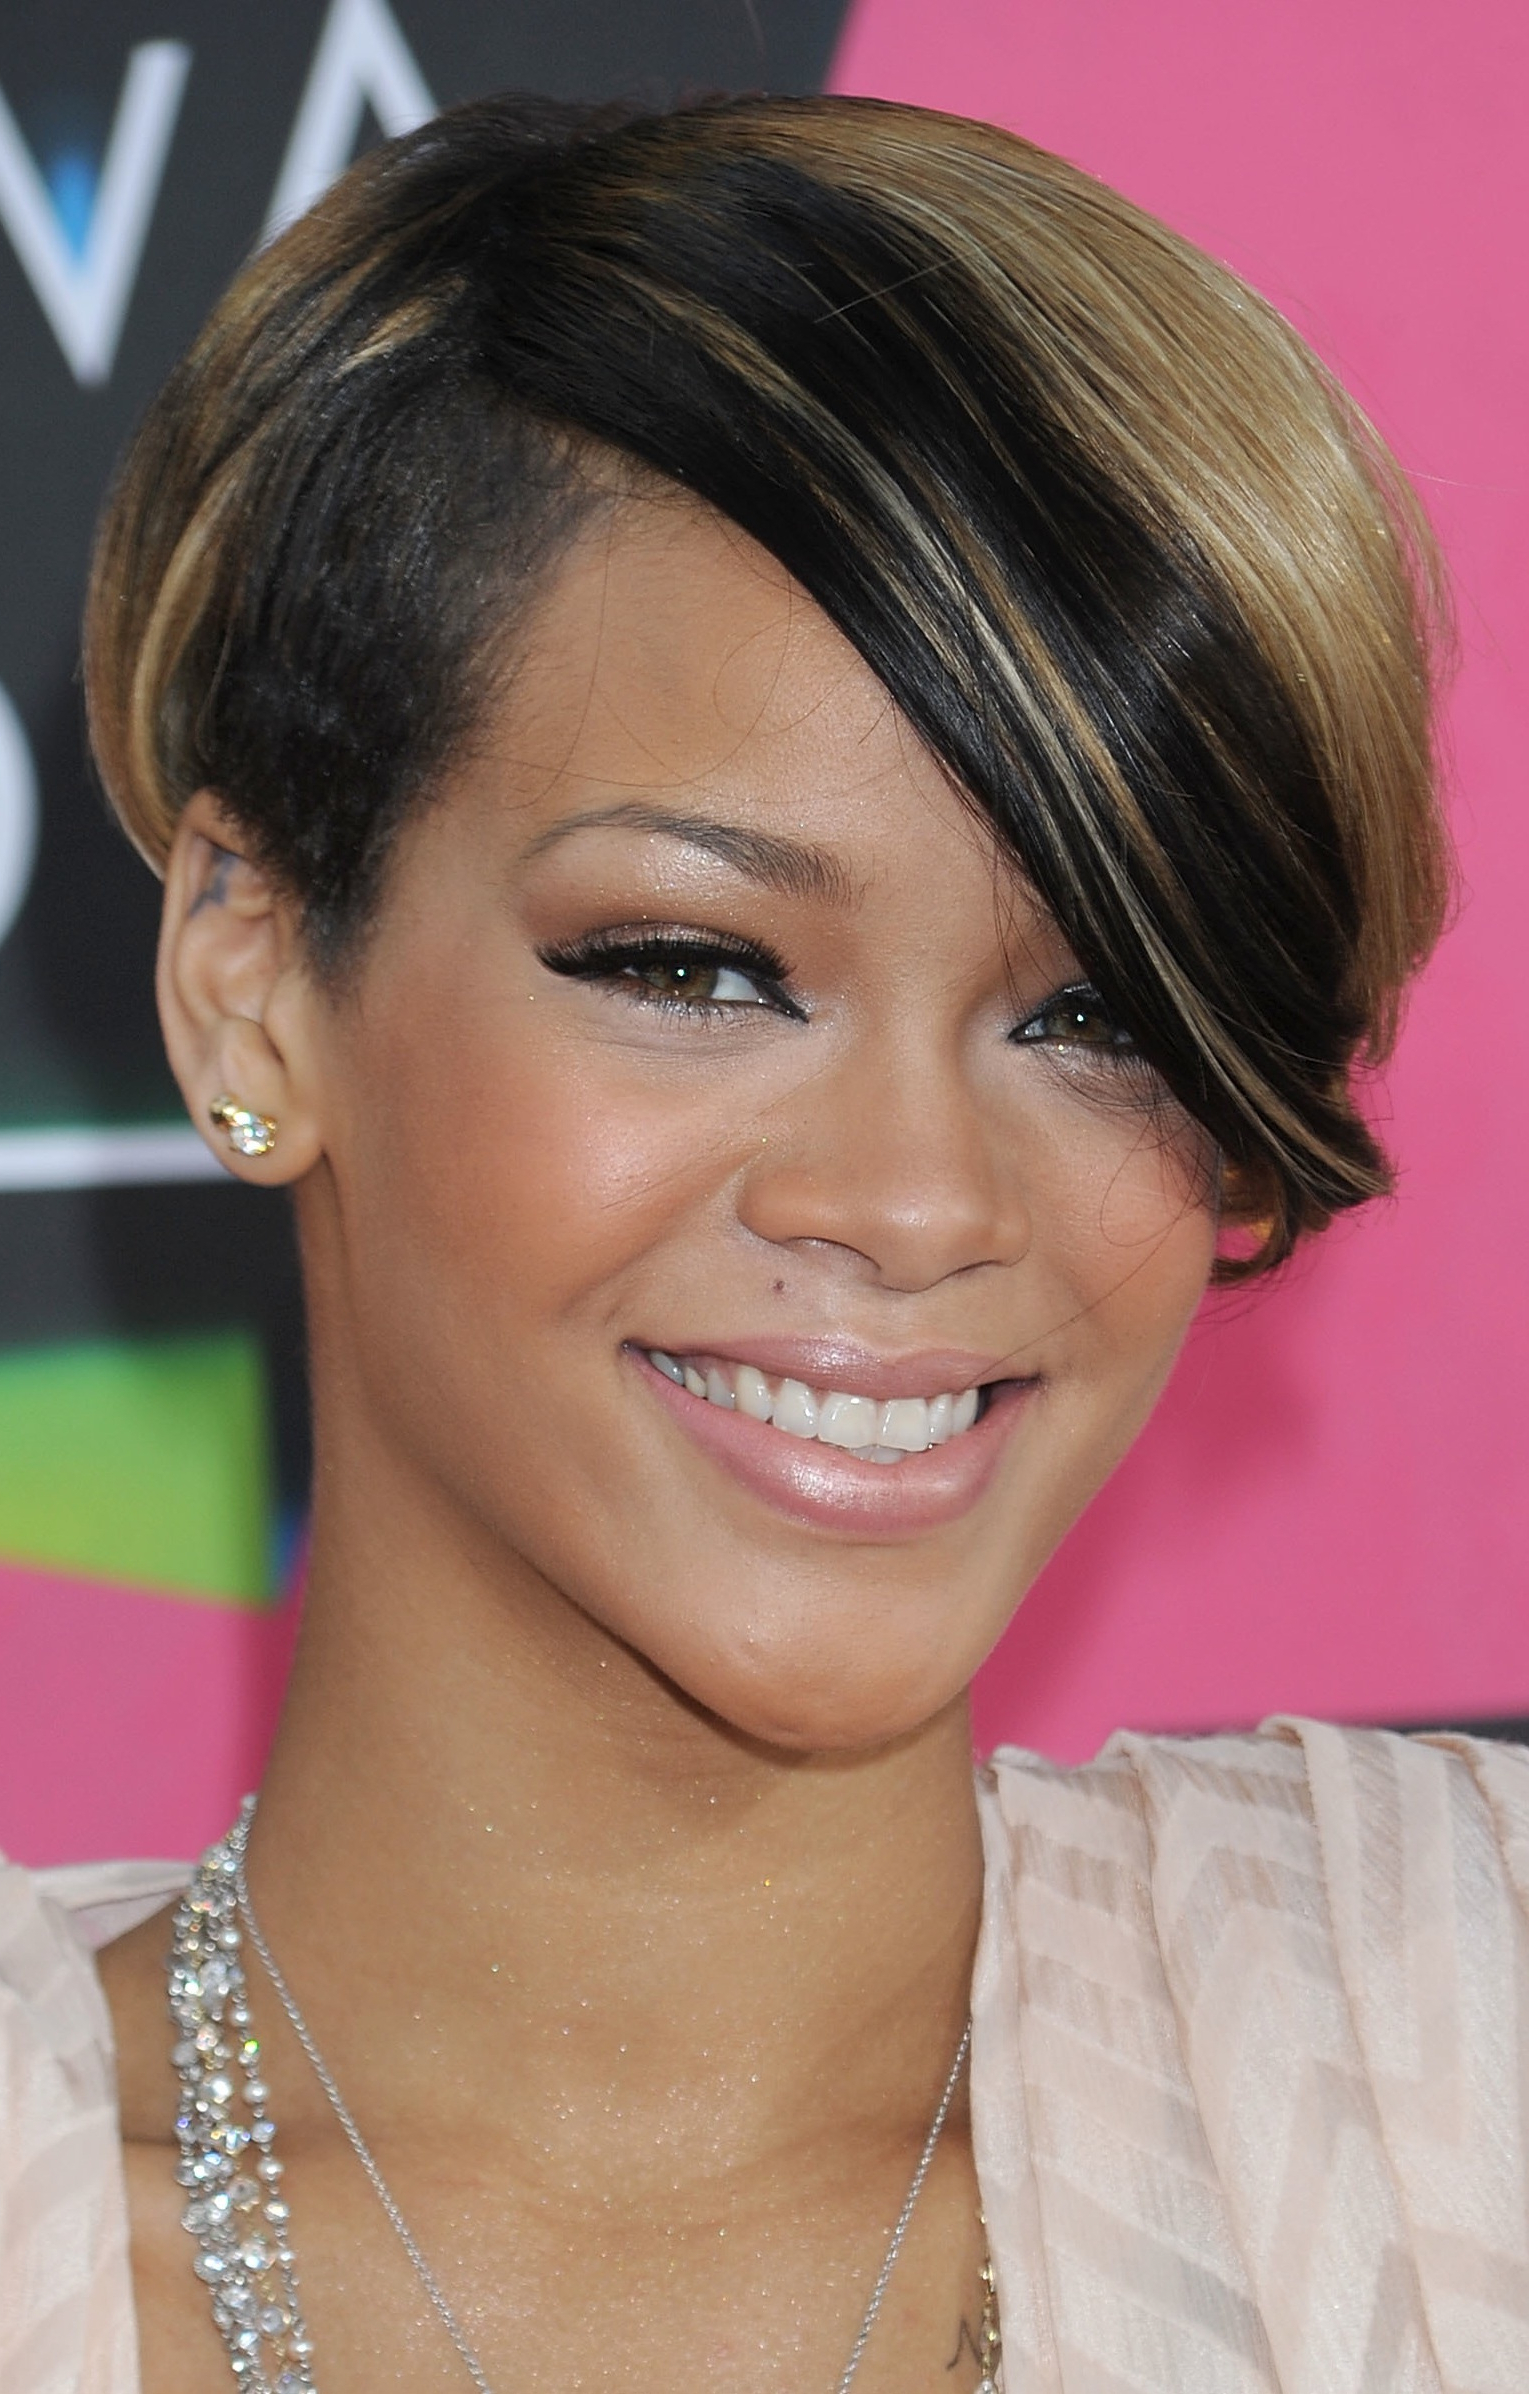 Well Liked Medium Haircuts For Black Women With Long Faces Regarding Trendy Short Hairstyles For Black Women – Hairstyle For Women & Man (View 20 of 20)